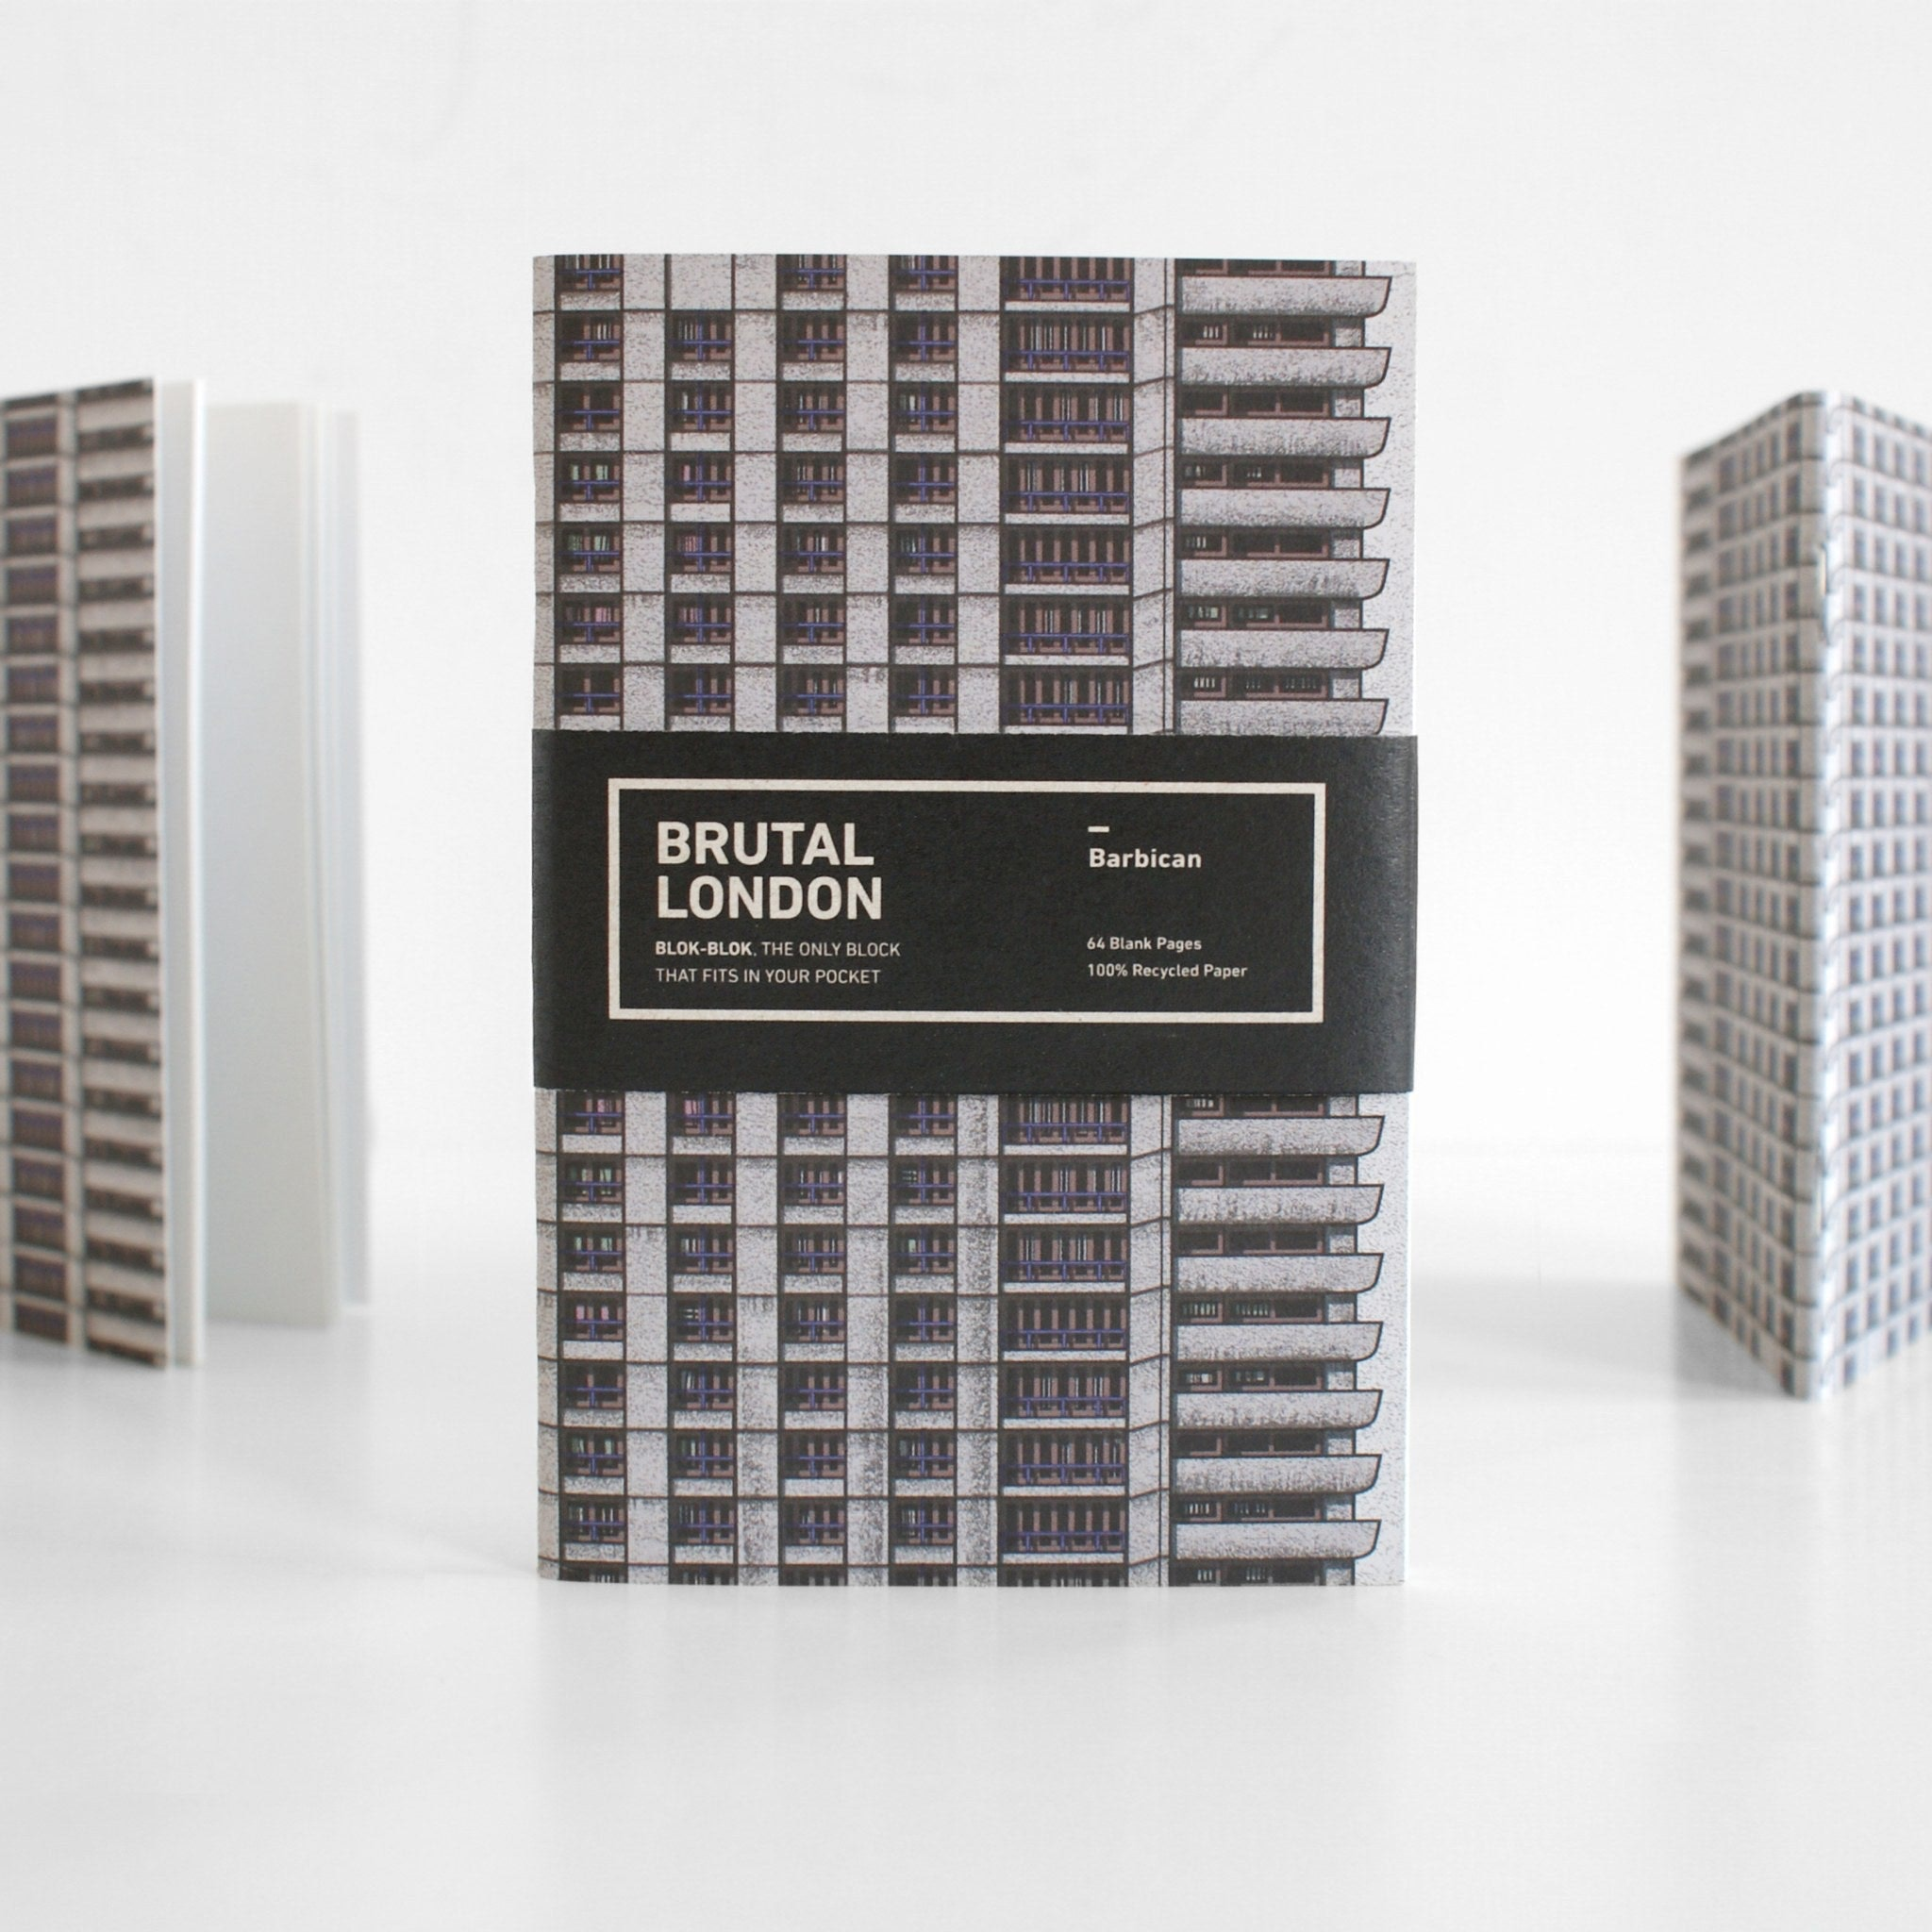 Brutal London Notebook: Barbican by Zupagrafika